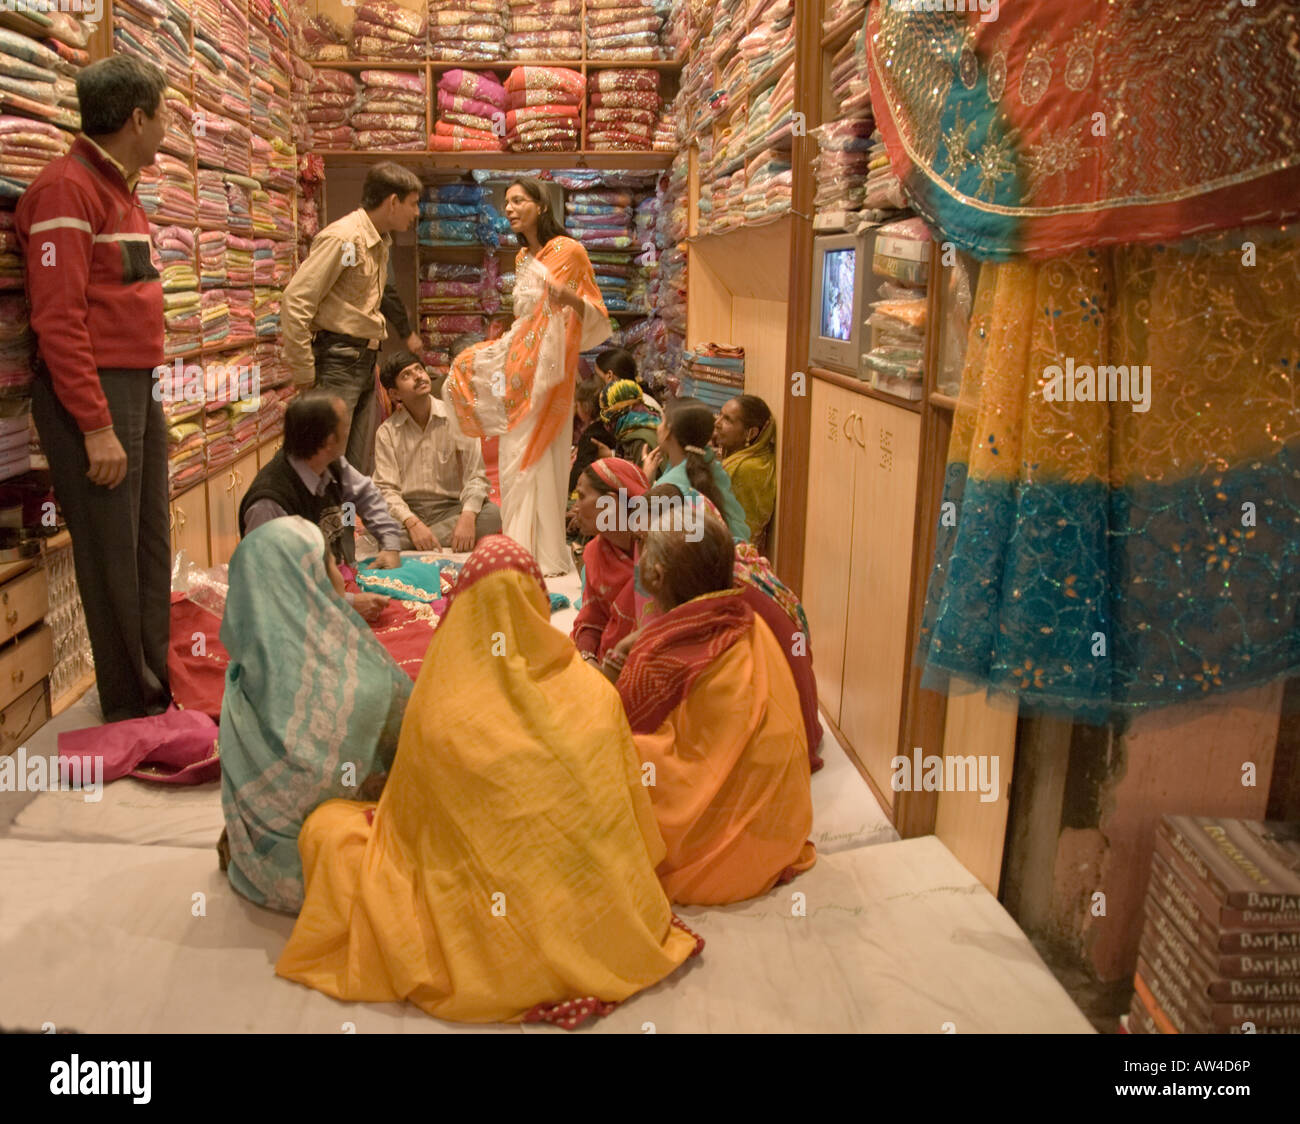 94841e9aa5 Women shopping for saris in a shop in Jaipur, India Stock Photo ...